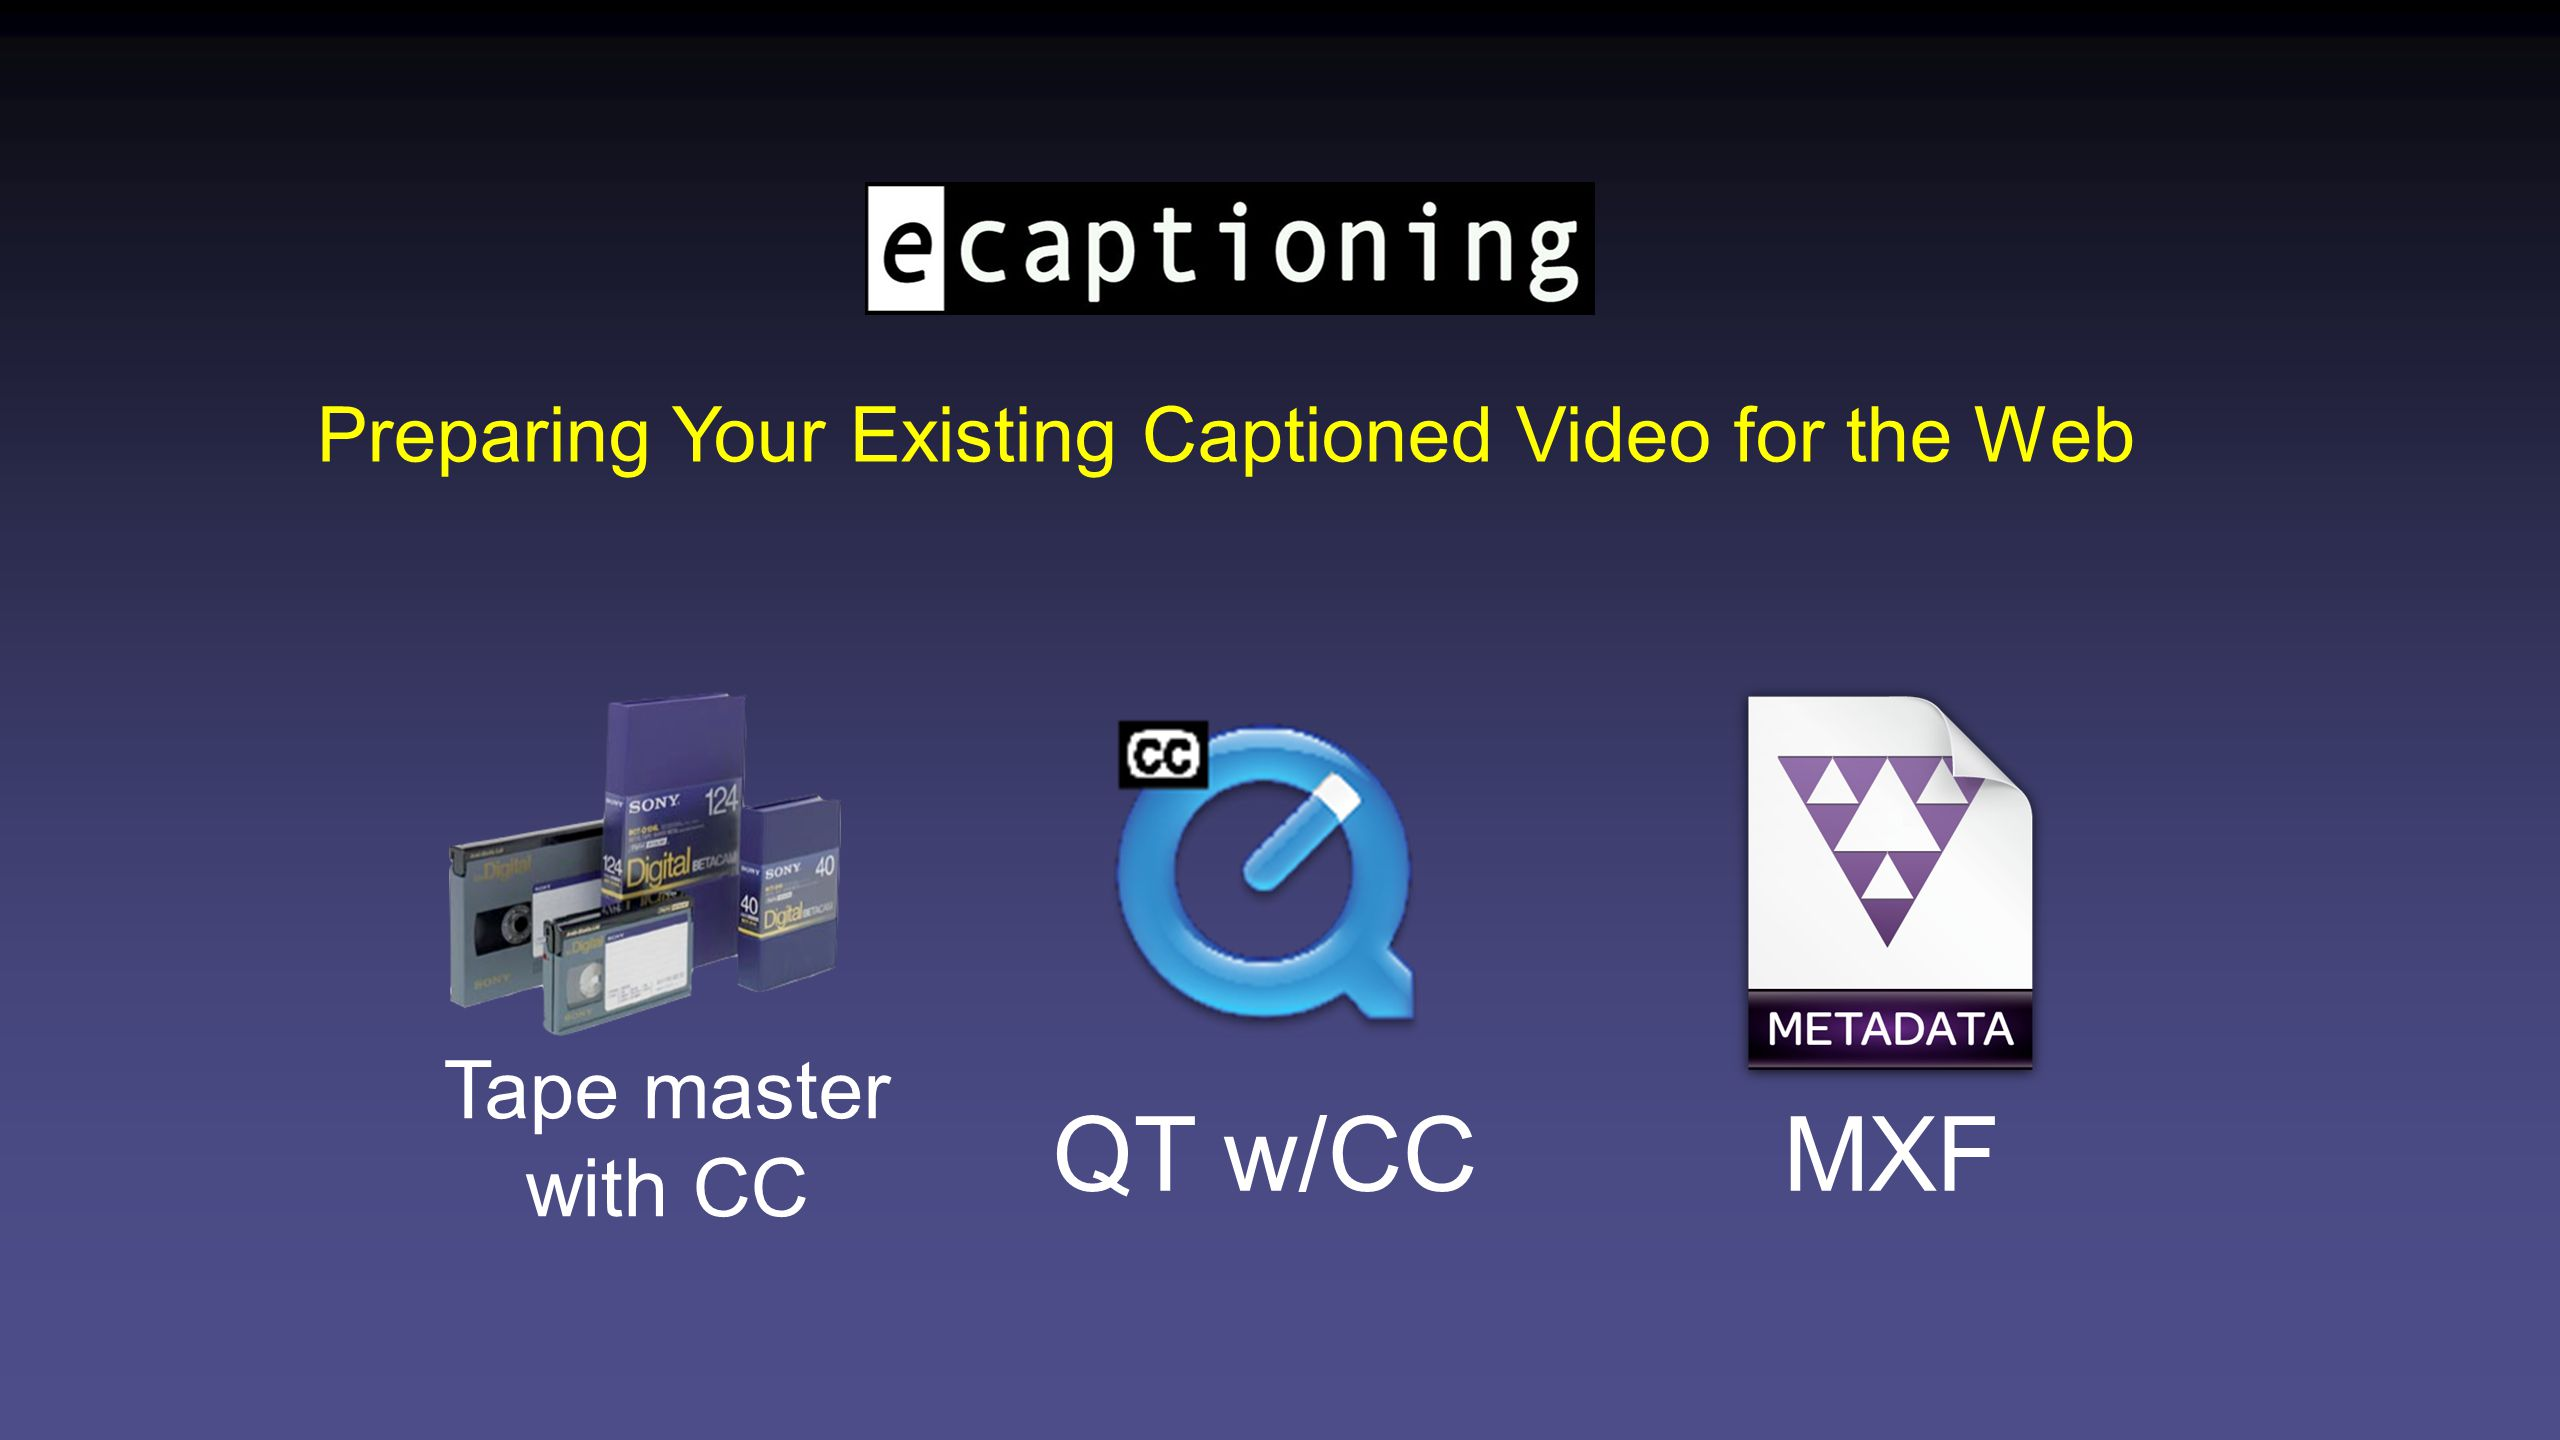 Editing Your Existing Captioned Video for the Web